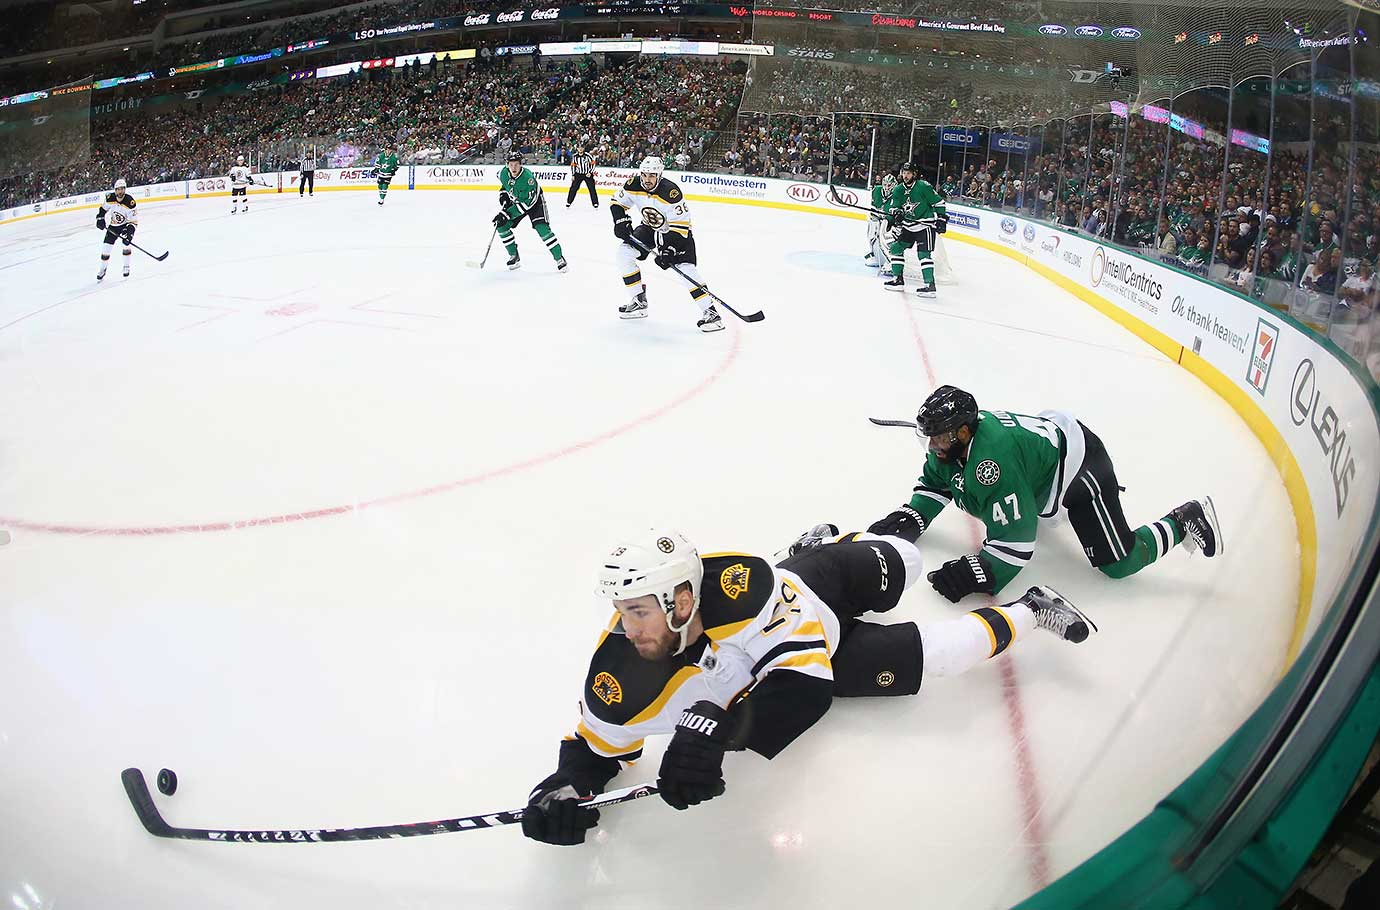 Landon Ferraro of the Boston Bruins skates the puck against Johnny Oduya of the Dallas Stars.